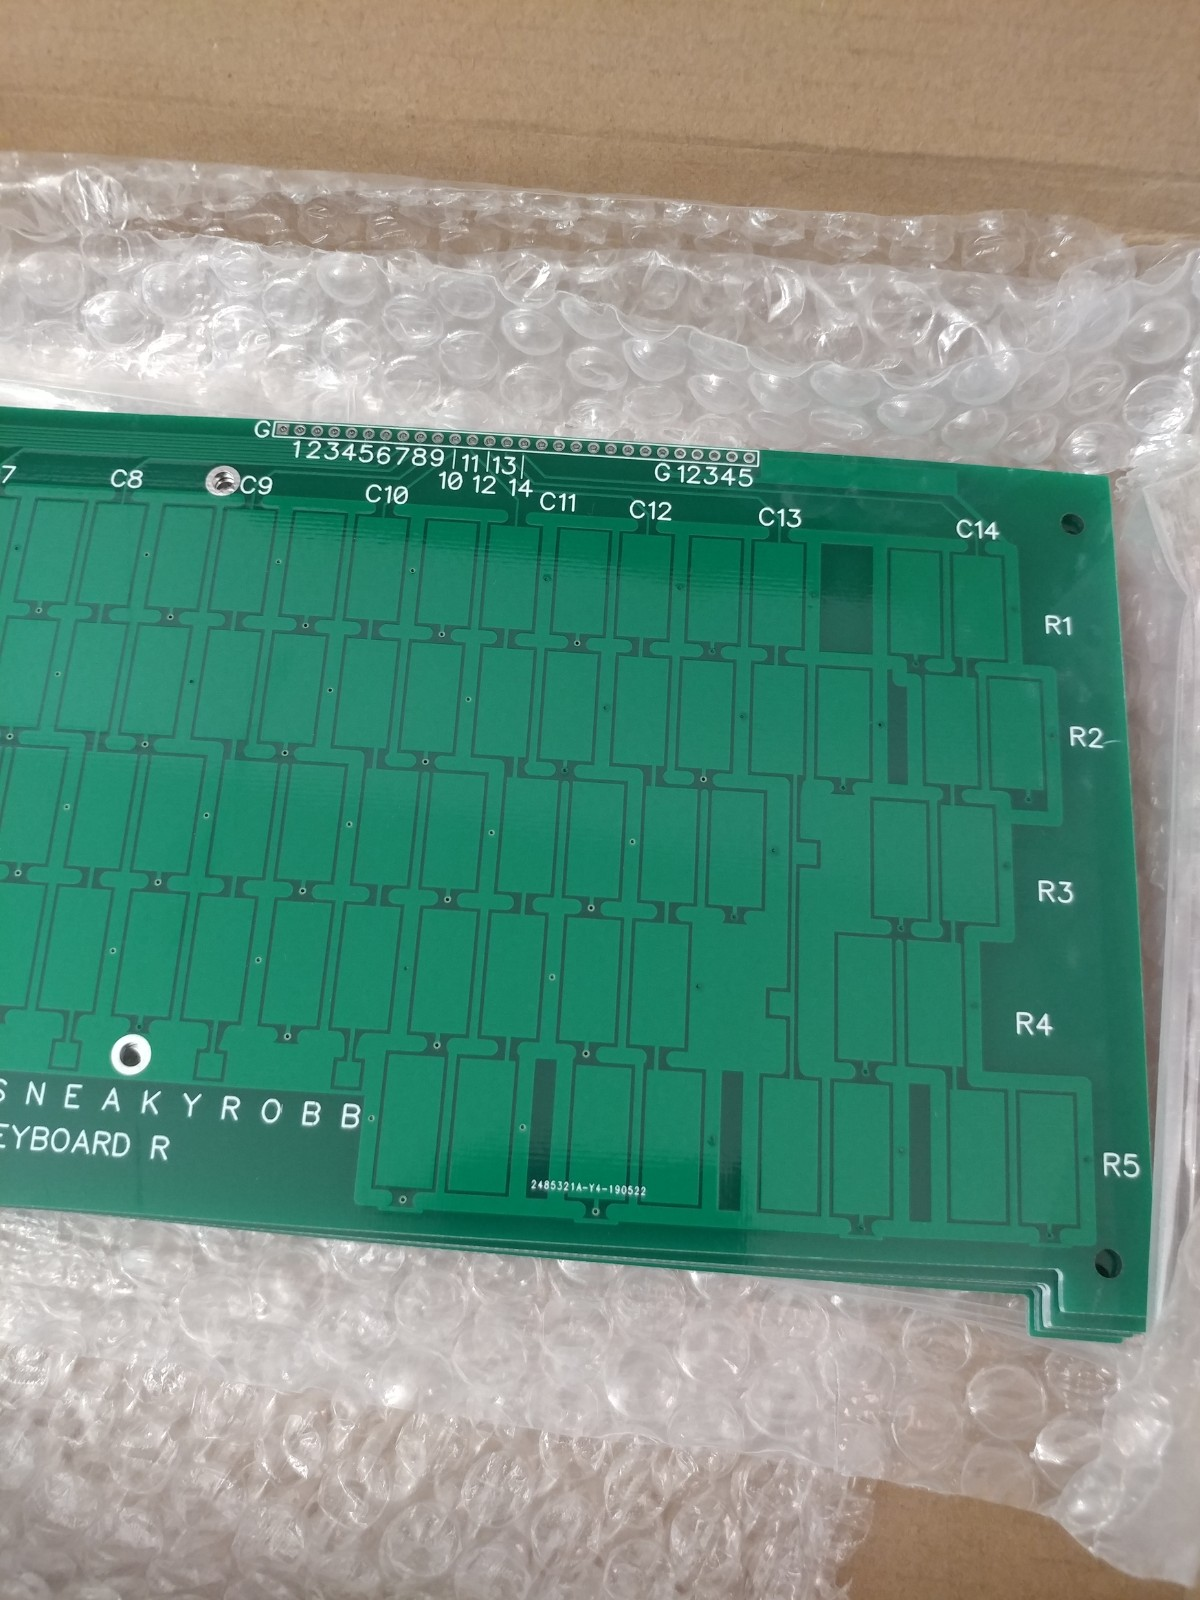 pcb front 2.jpg